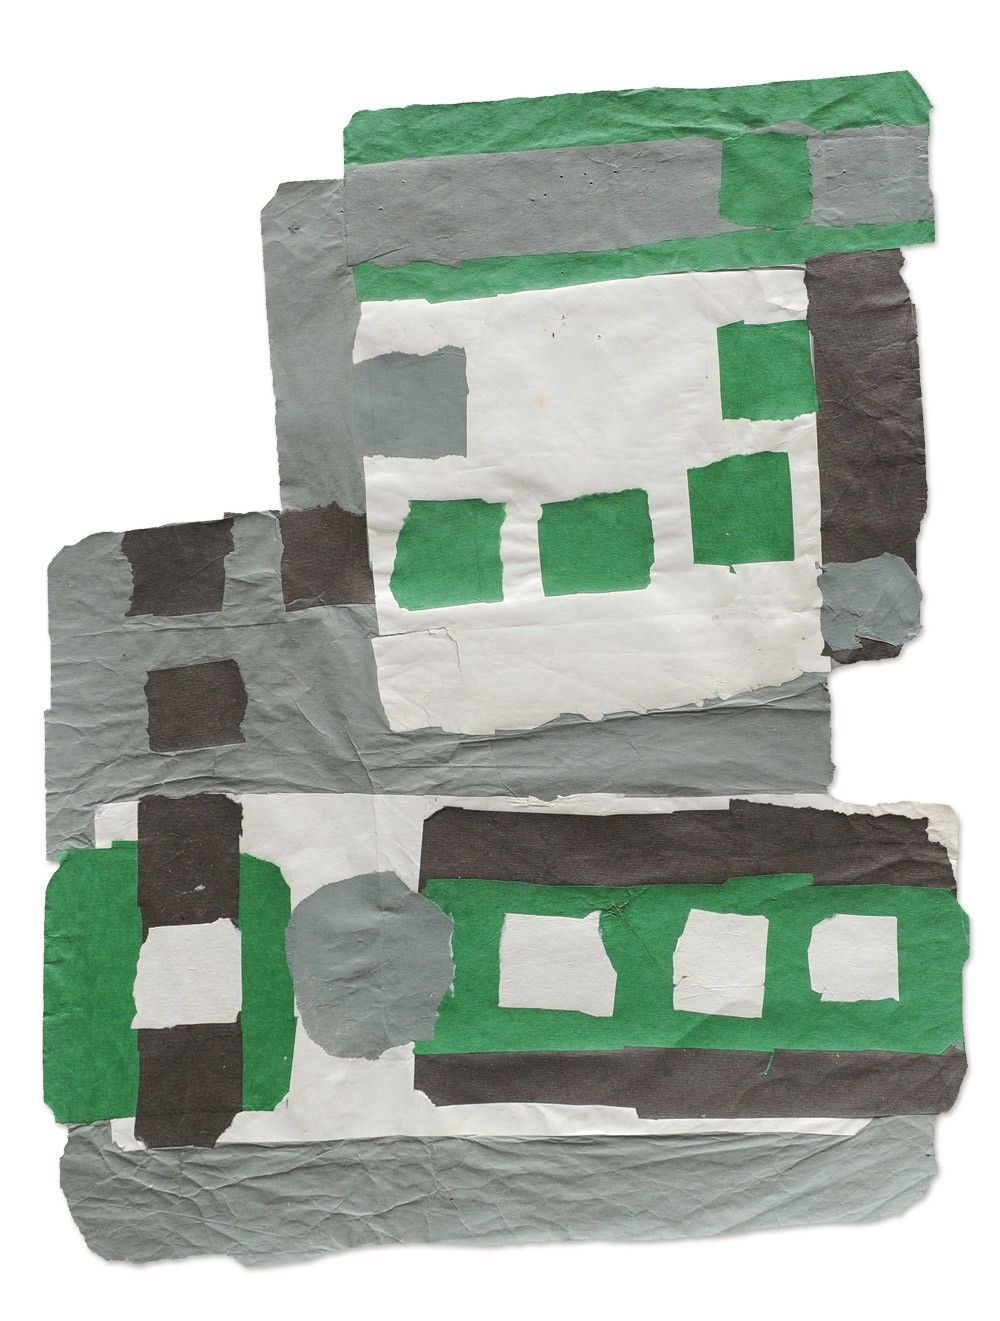 """Francis Davison [UK] (1919 - 1984) ~ """"Small Squares, Green, White, Grey and Brown"""" ca 1965-71. Paper collage (60 x 49 cm). 